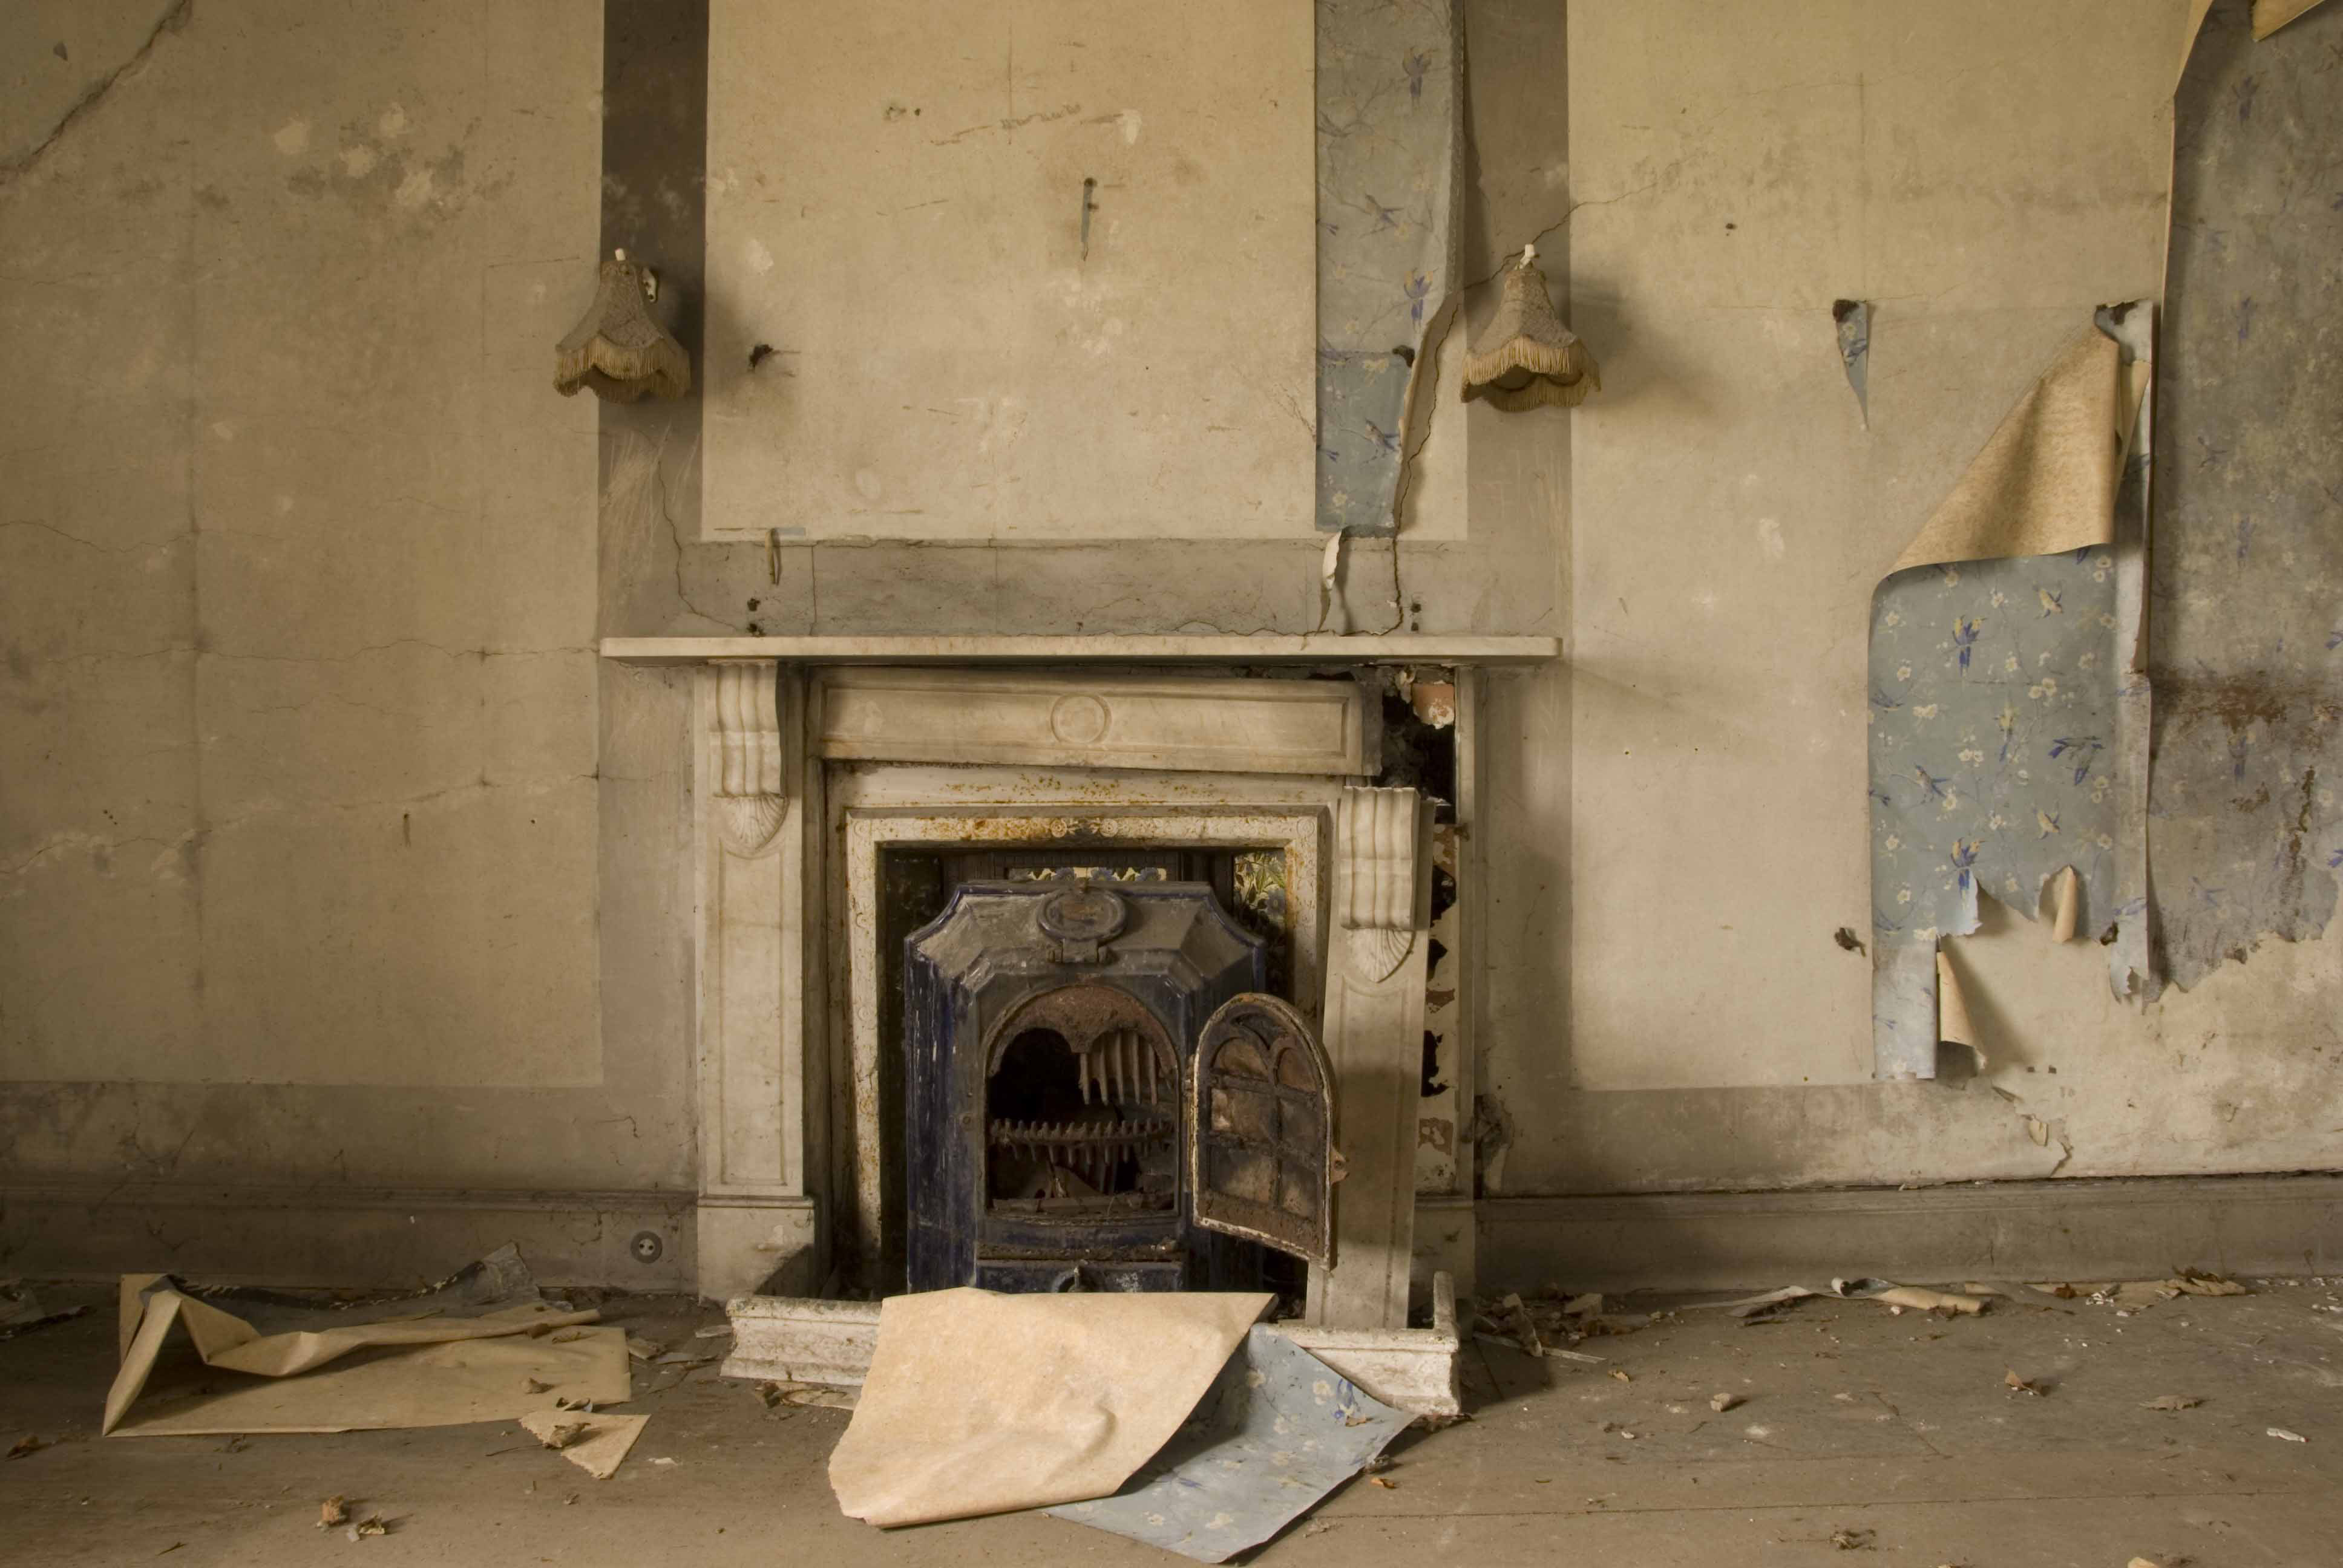 3_Cardigan-Castle_Purcell_RIBA2016_Wallpaper-and-Fireplace-before_-Purcell-2009